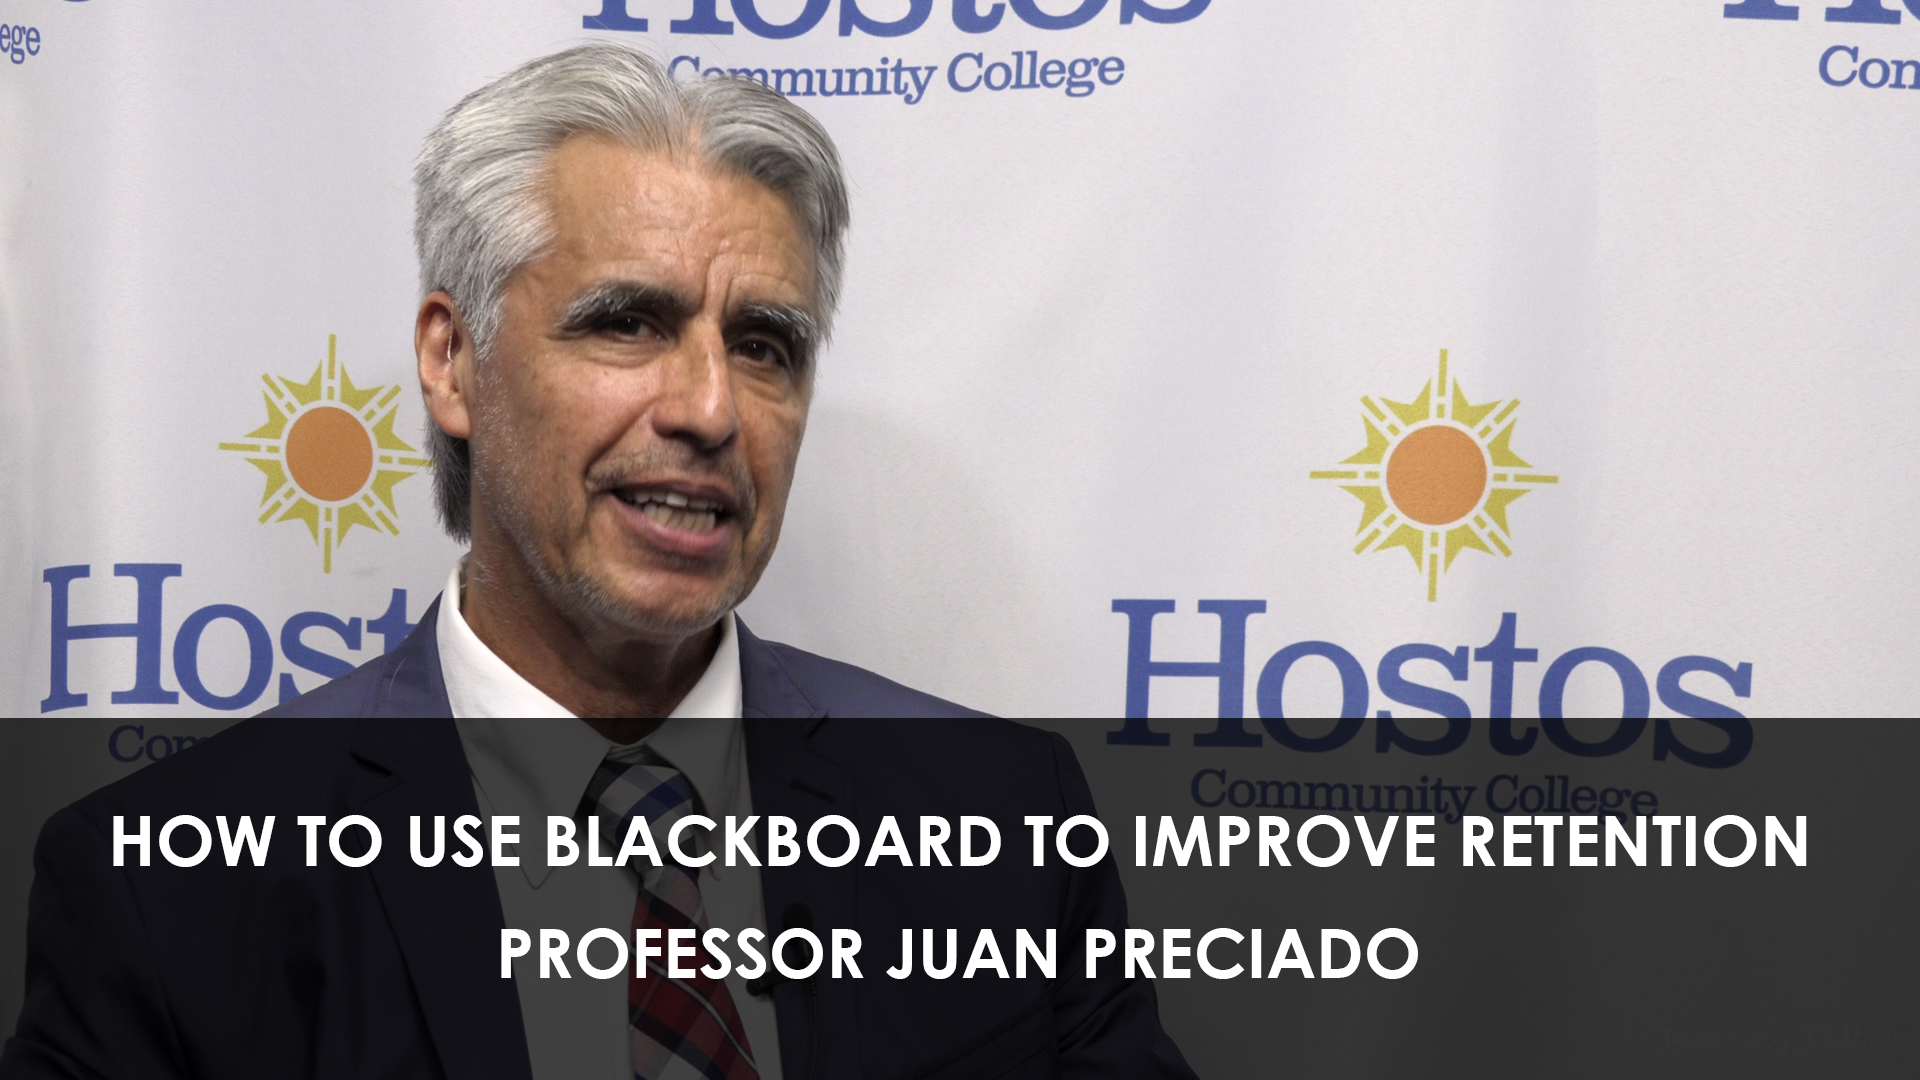 How to use blackboard to improve retention Part II Prof. Juan Preciado